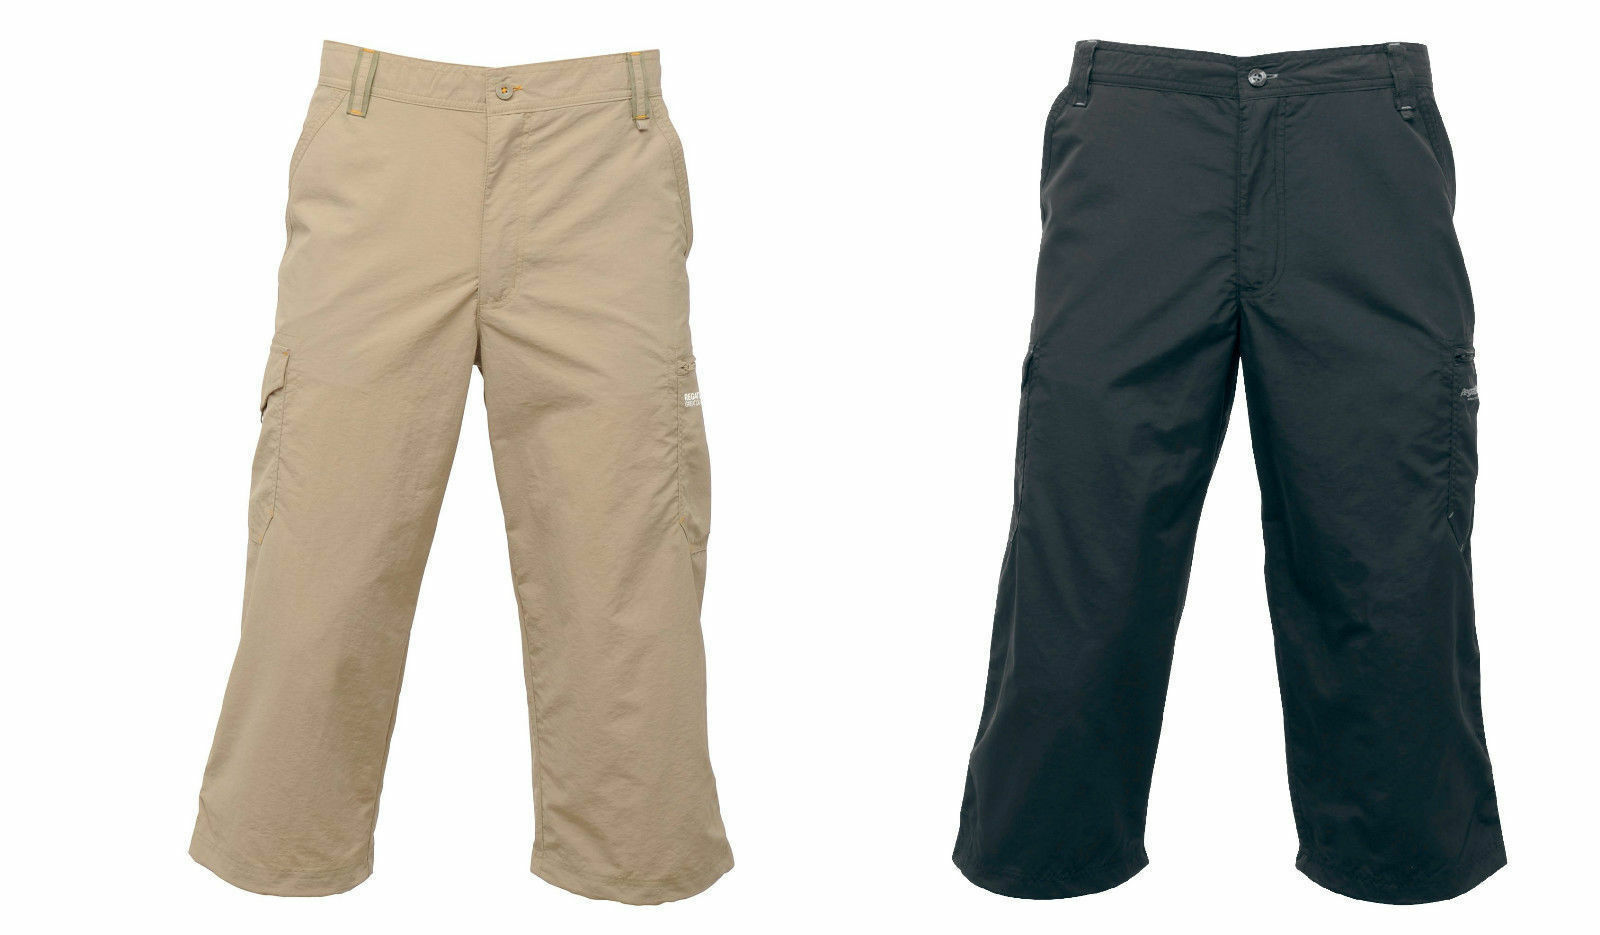 Regatta MENS CAPRI PANTS Larsson UP  Size 60 RRP from 49,95 here 20% cheaper  a lot of surprises